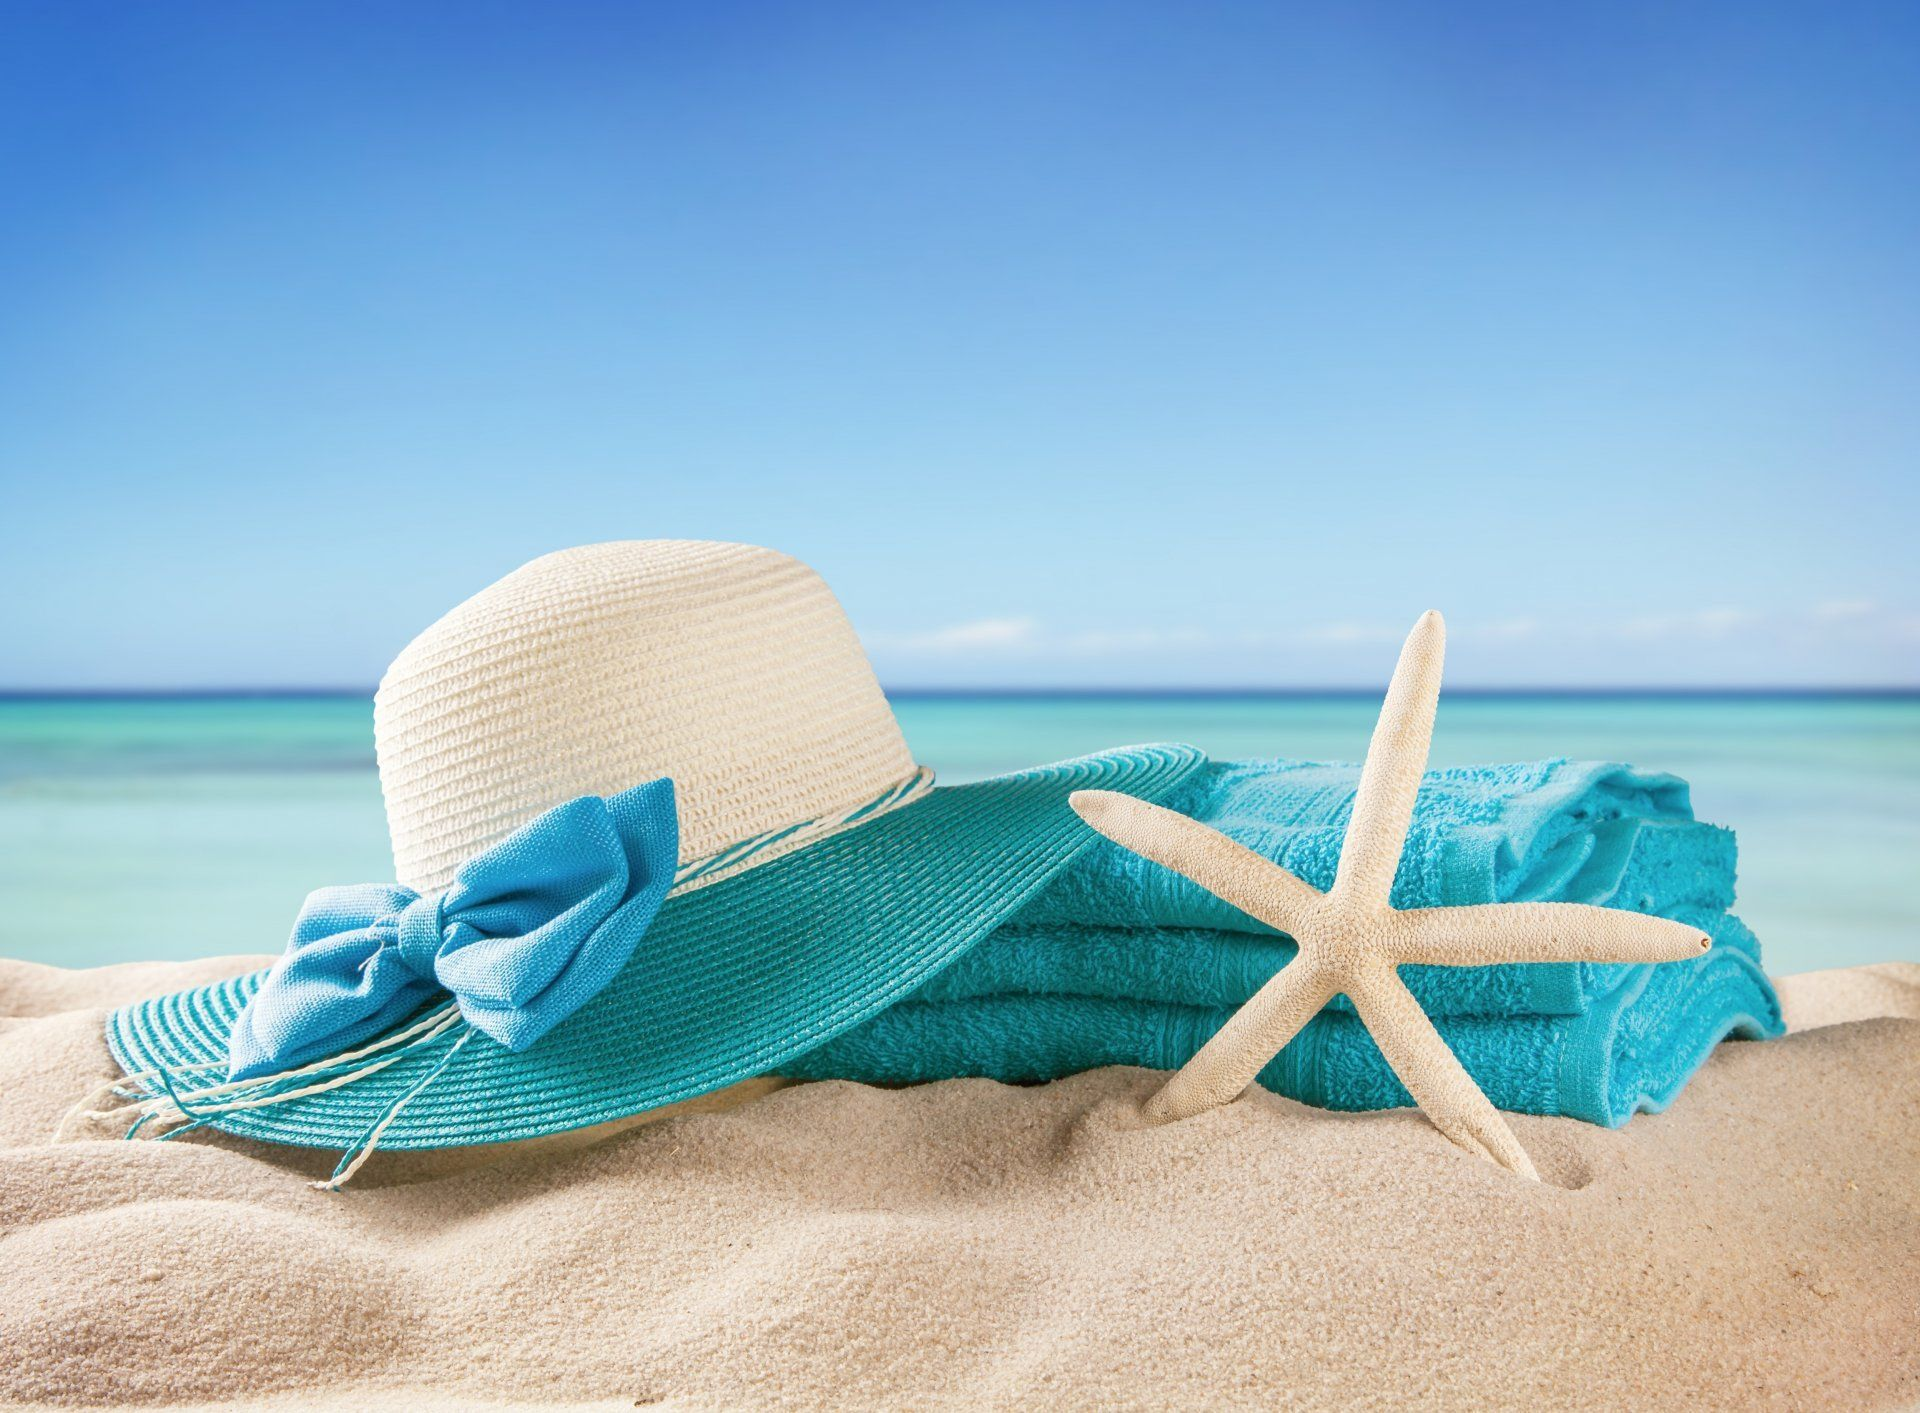 Summer 4k Ultra Hd Wallpaper And Background Image - Summer Vacation Beach Accessories , HD Wallpaper & Backgrounds